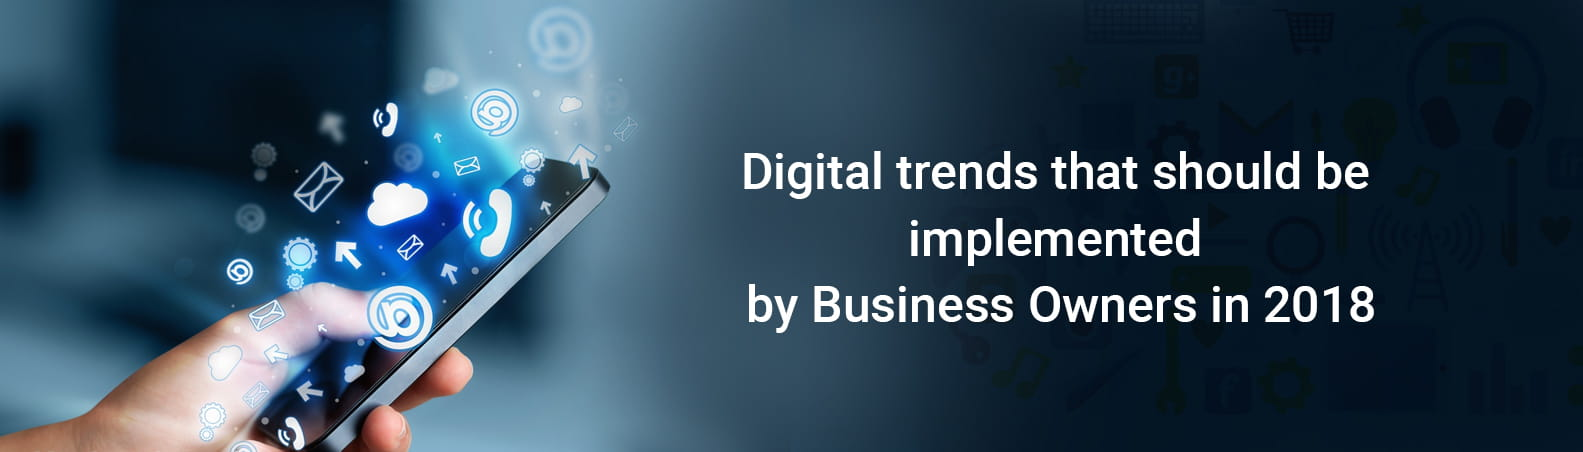 Every business owner should implement these Digital Trends in 2018